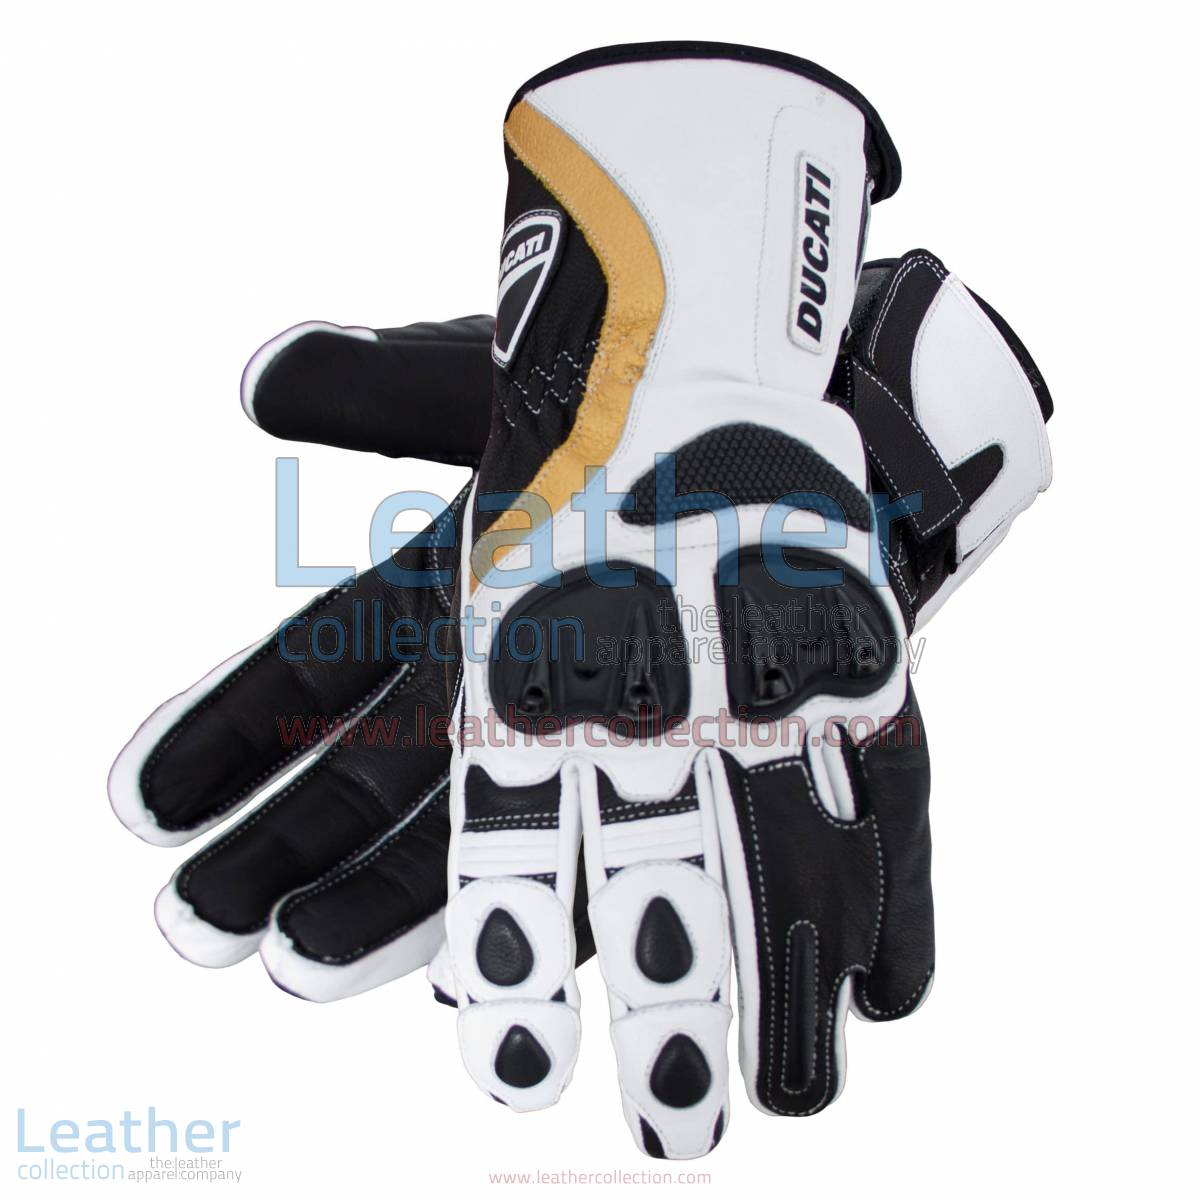 Ducati Motorcycle Leather Gloves | motorcycle gloves,Ducati motorcycle gloves